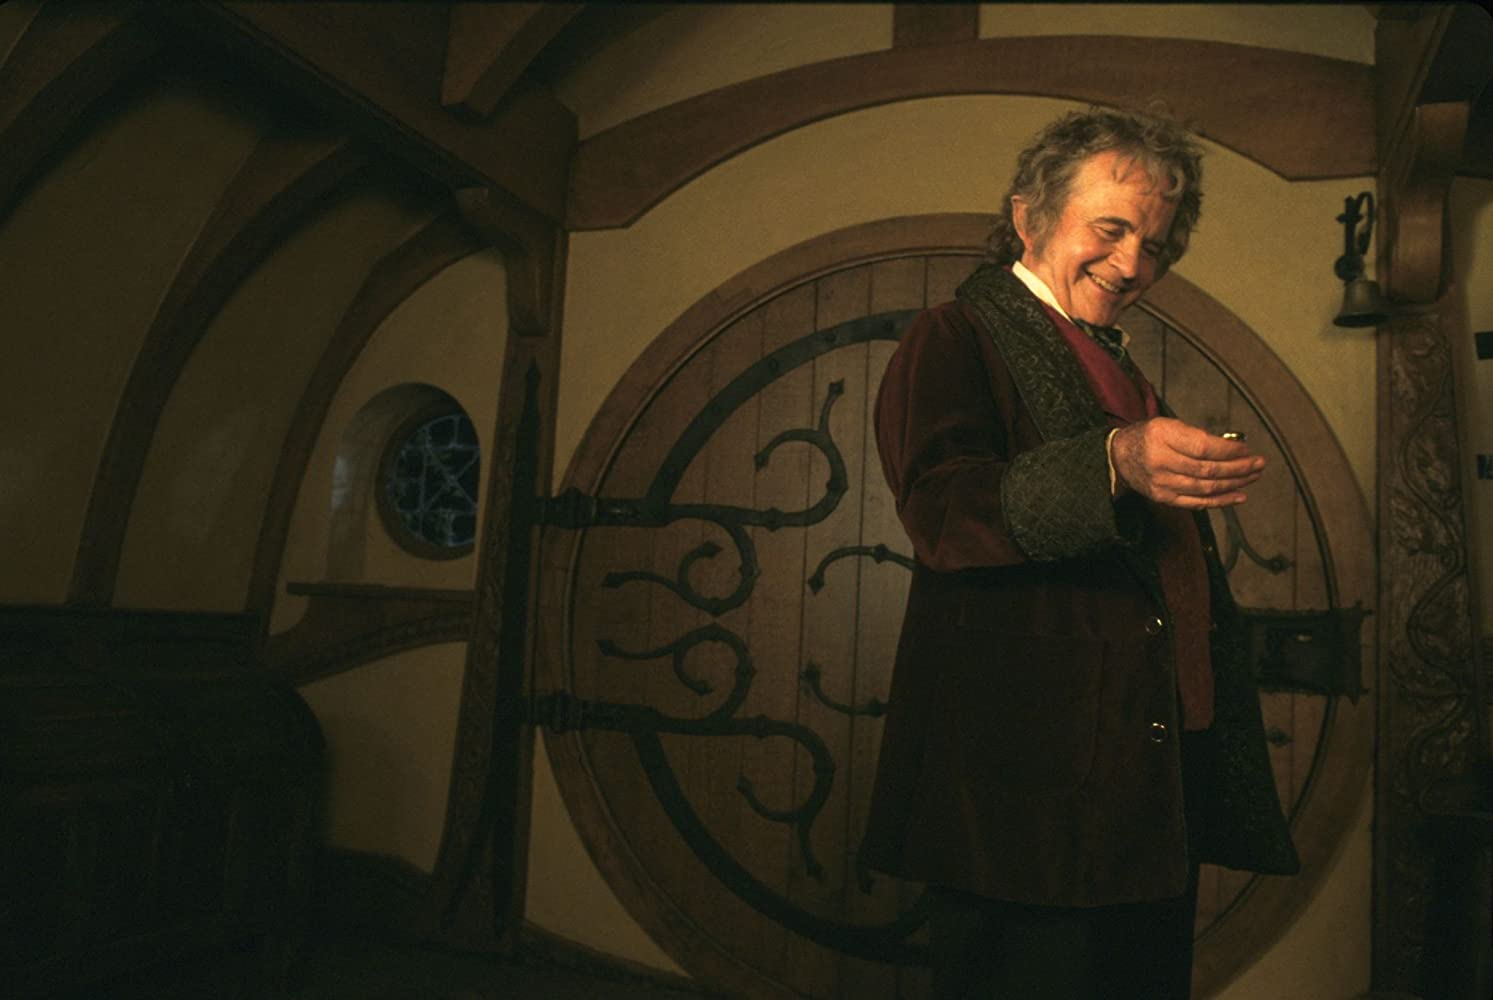 Ian Holm in The Hobbit